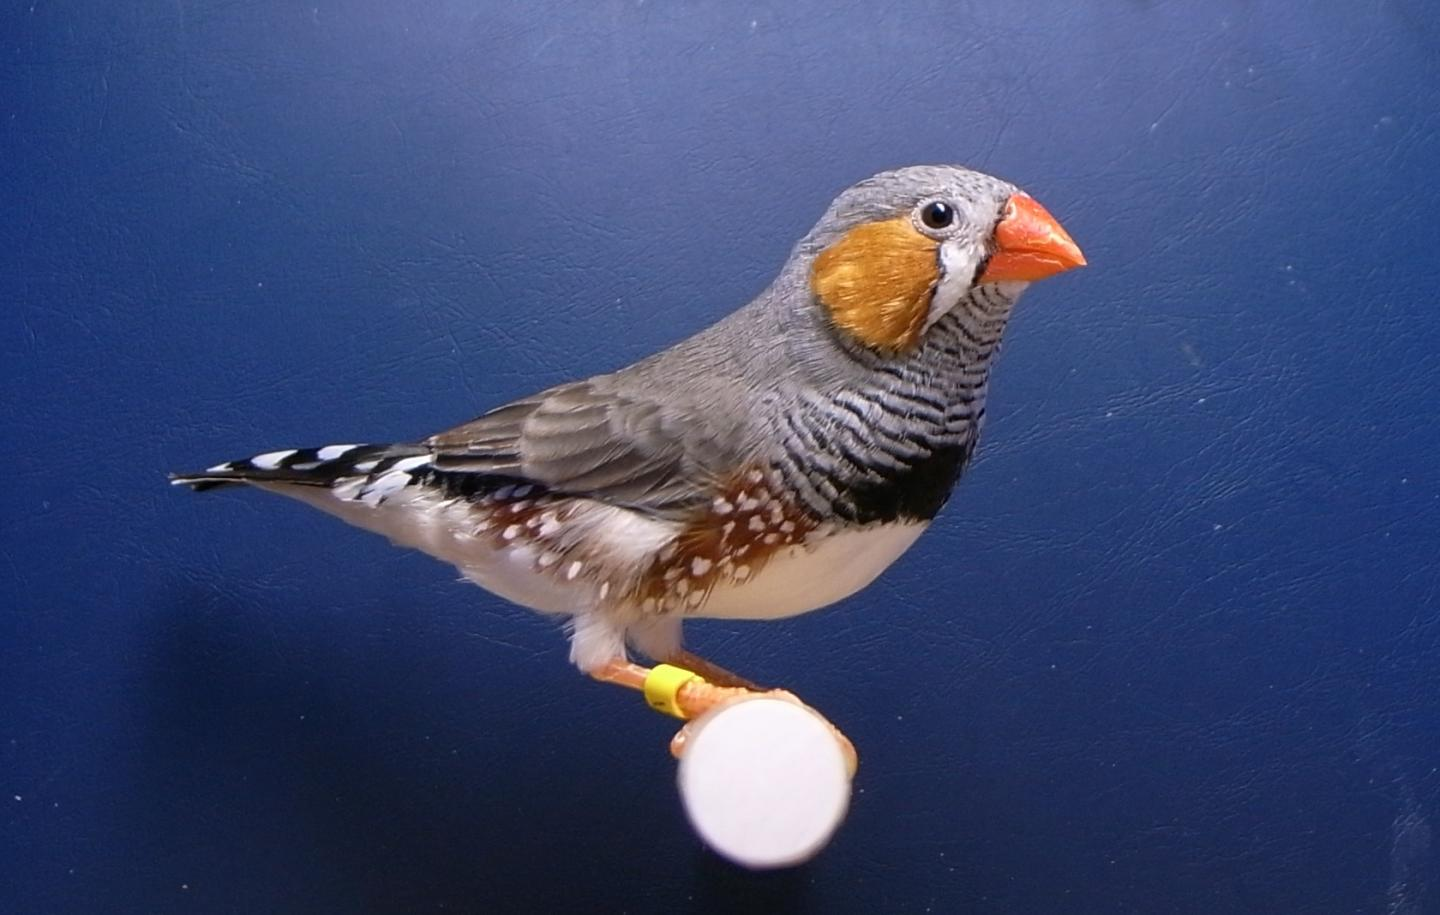 The Zebra Finch Used in the Study